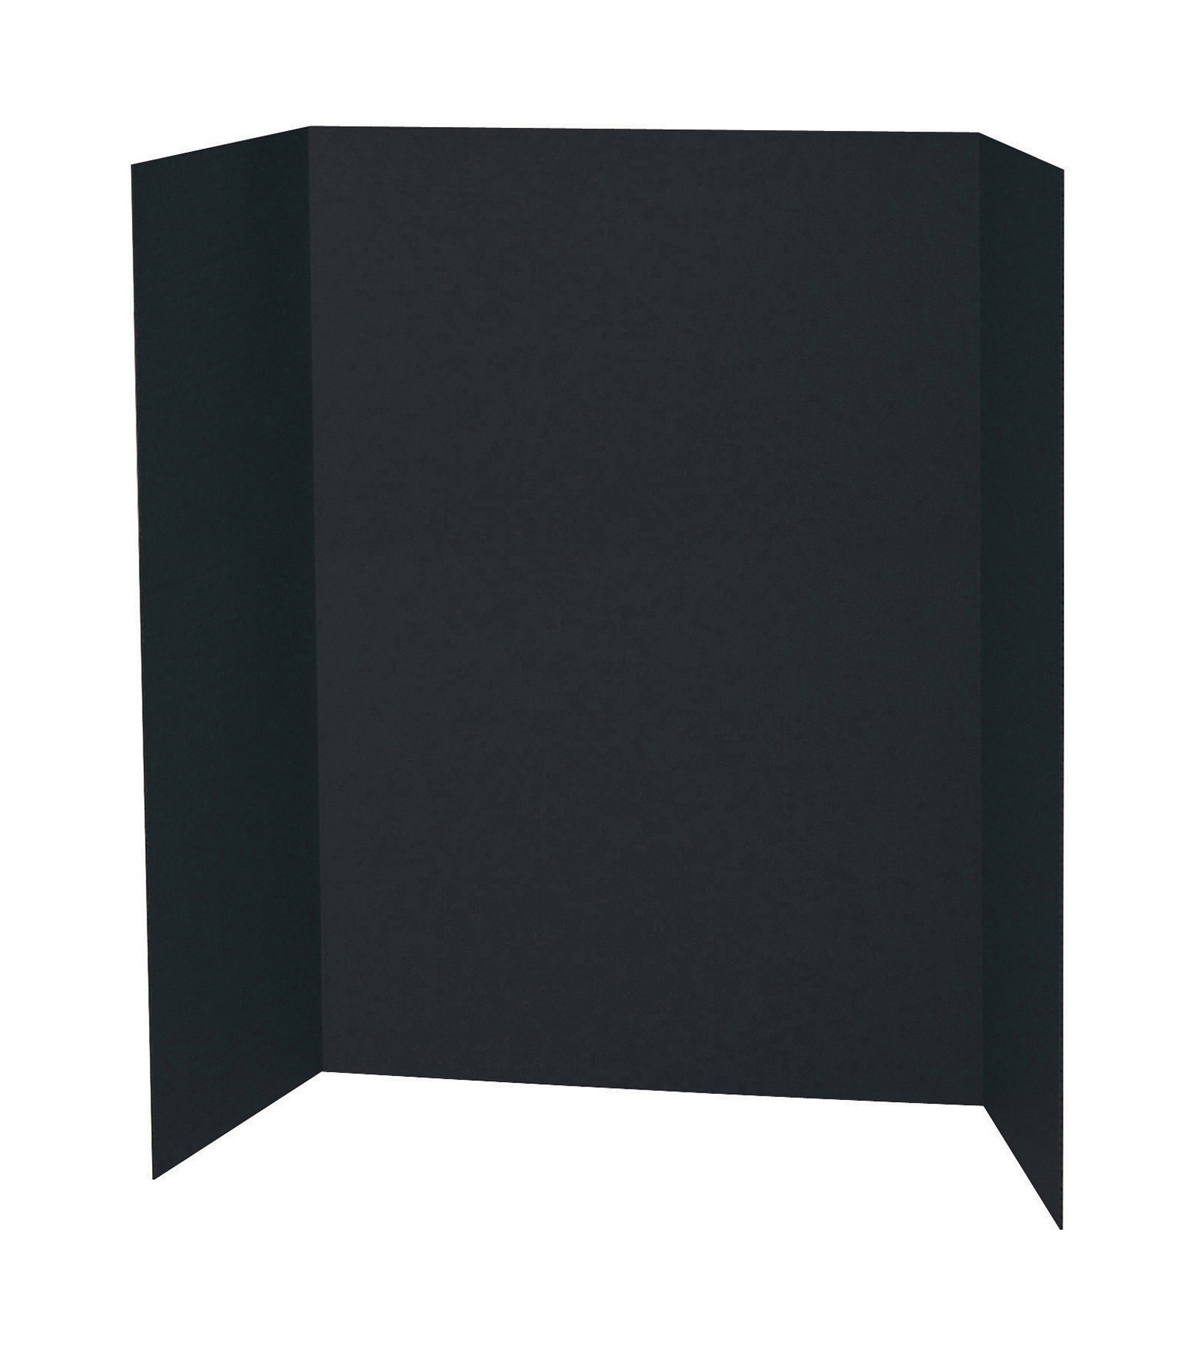 Pacon 48\u0022x36\u0022 Presentation Board-Black